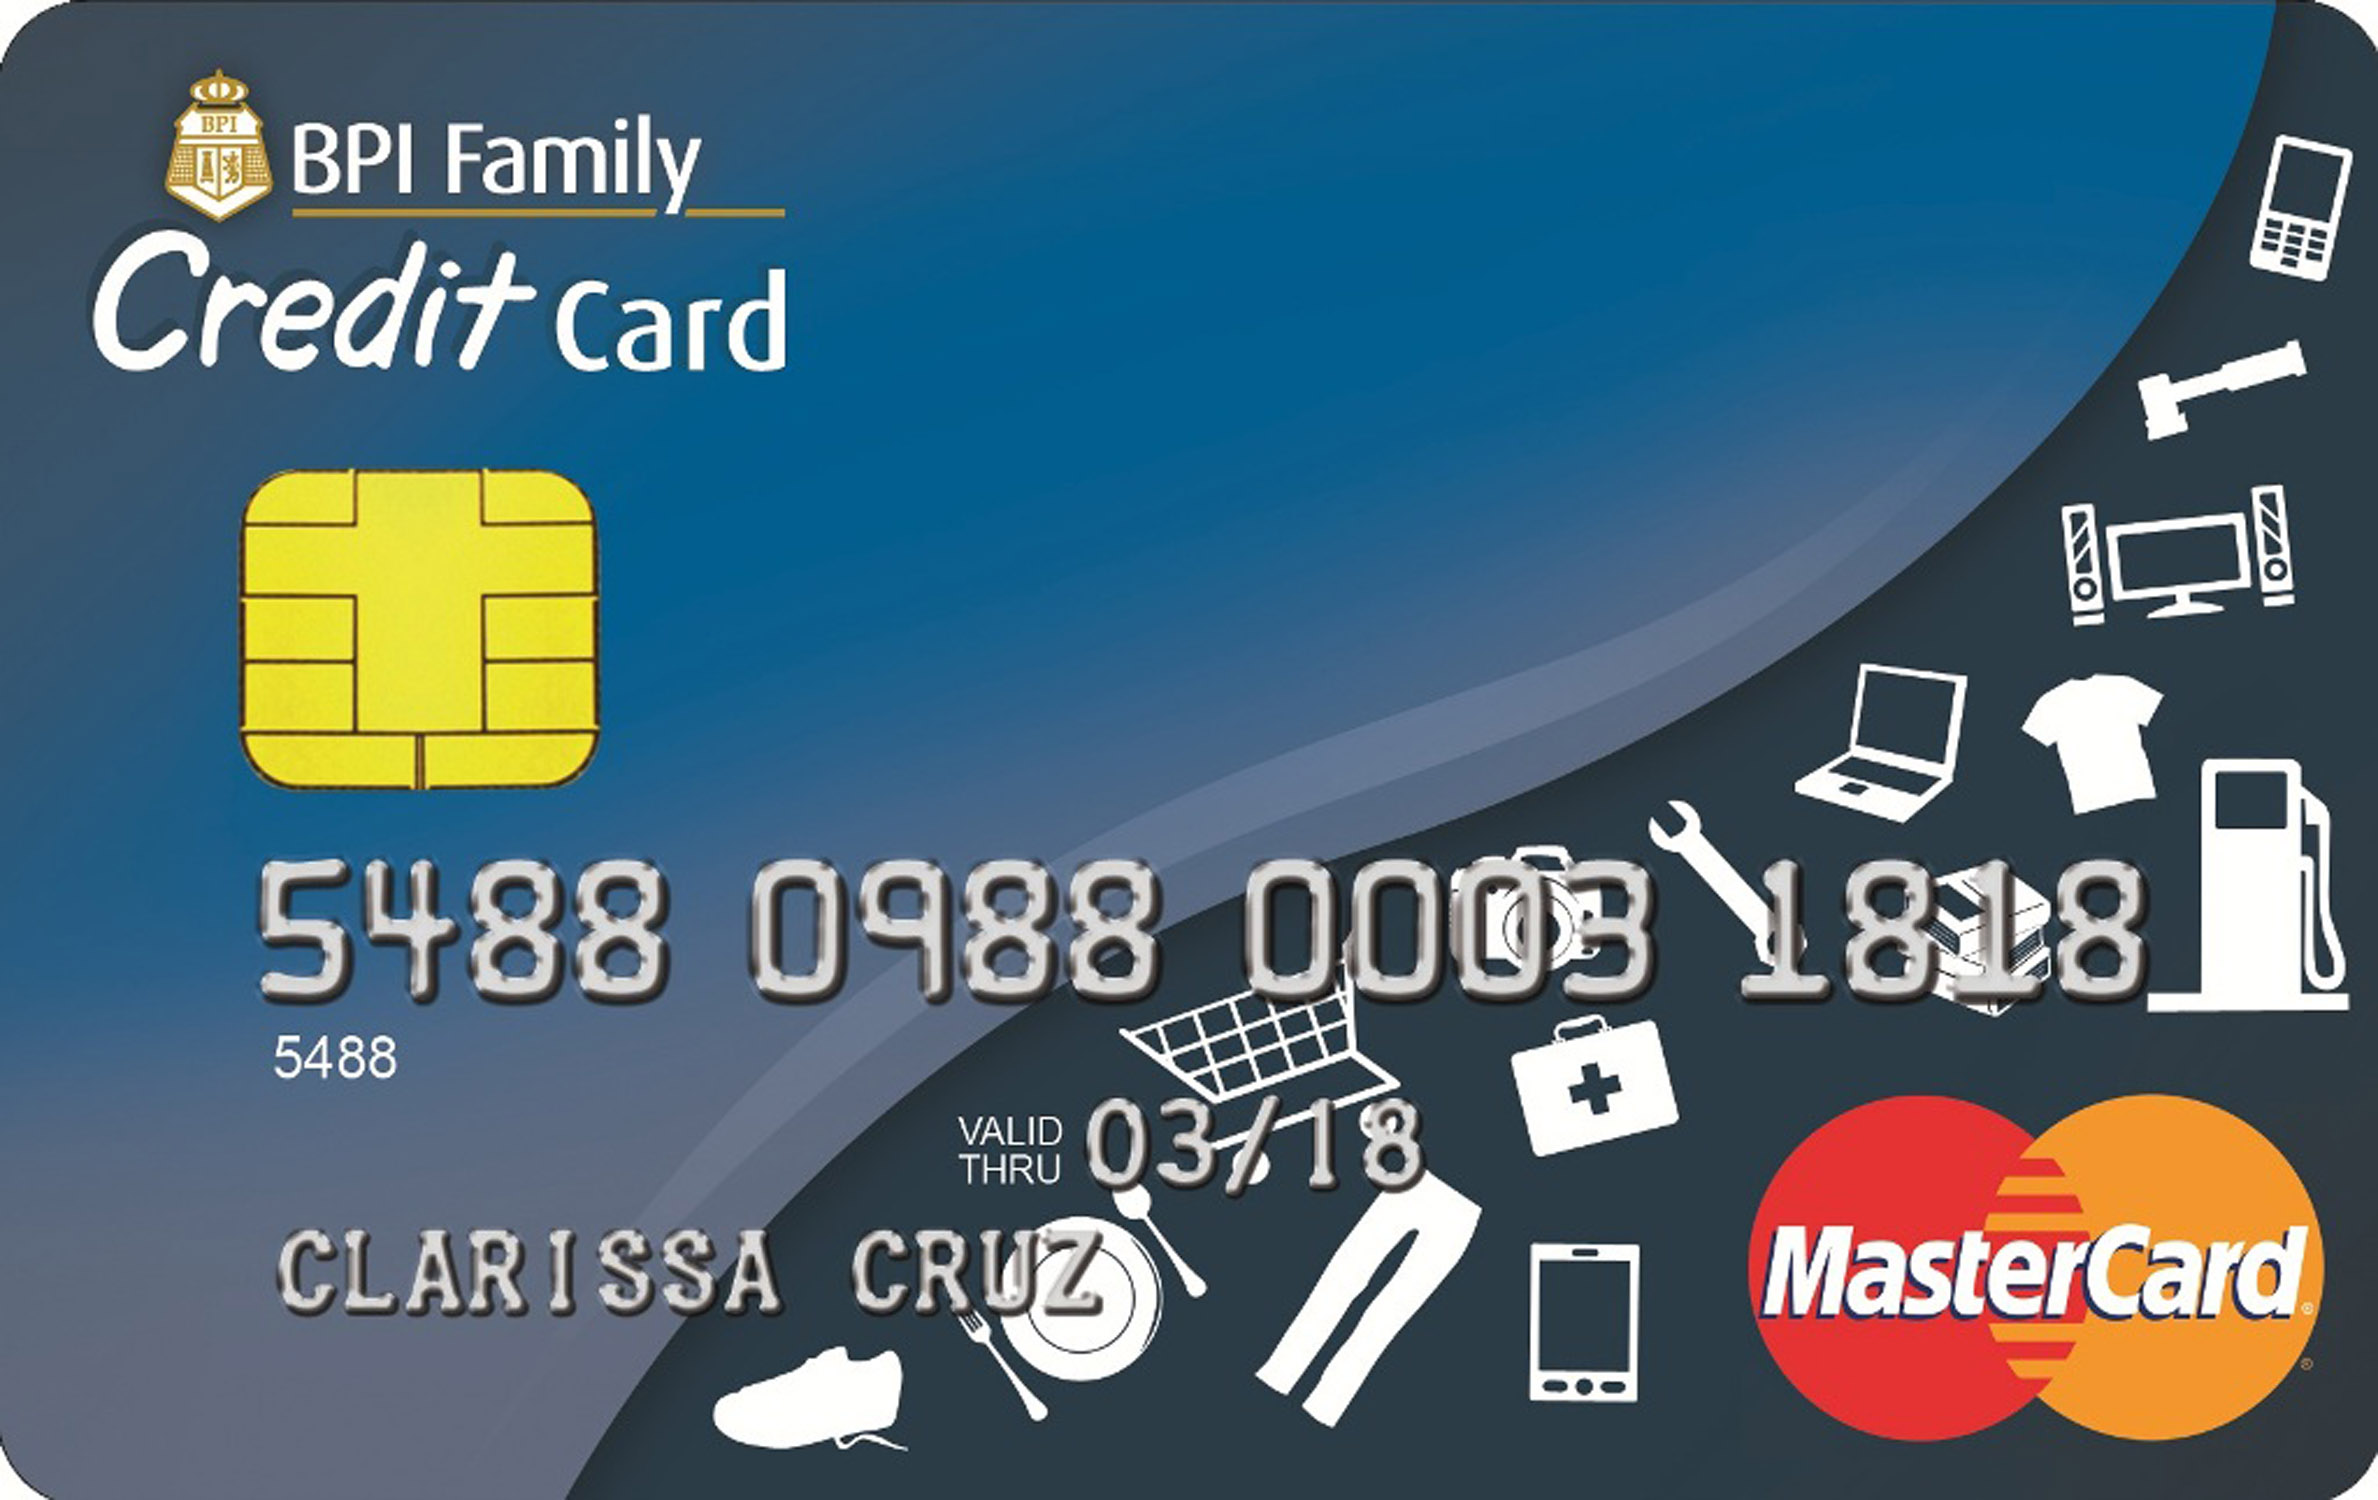 Merchants Tire Credit Card >> Credit Card, to be or not to be? « Live Life to the Fullest – Finding Purpose to our Lives